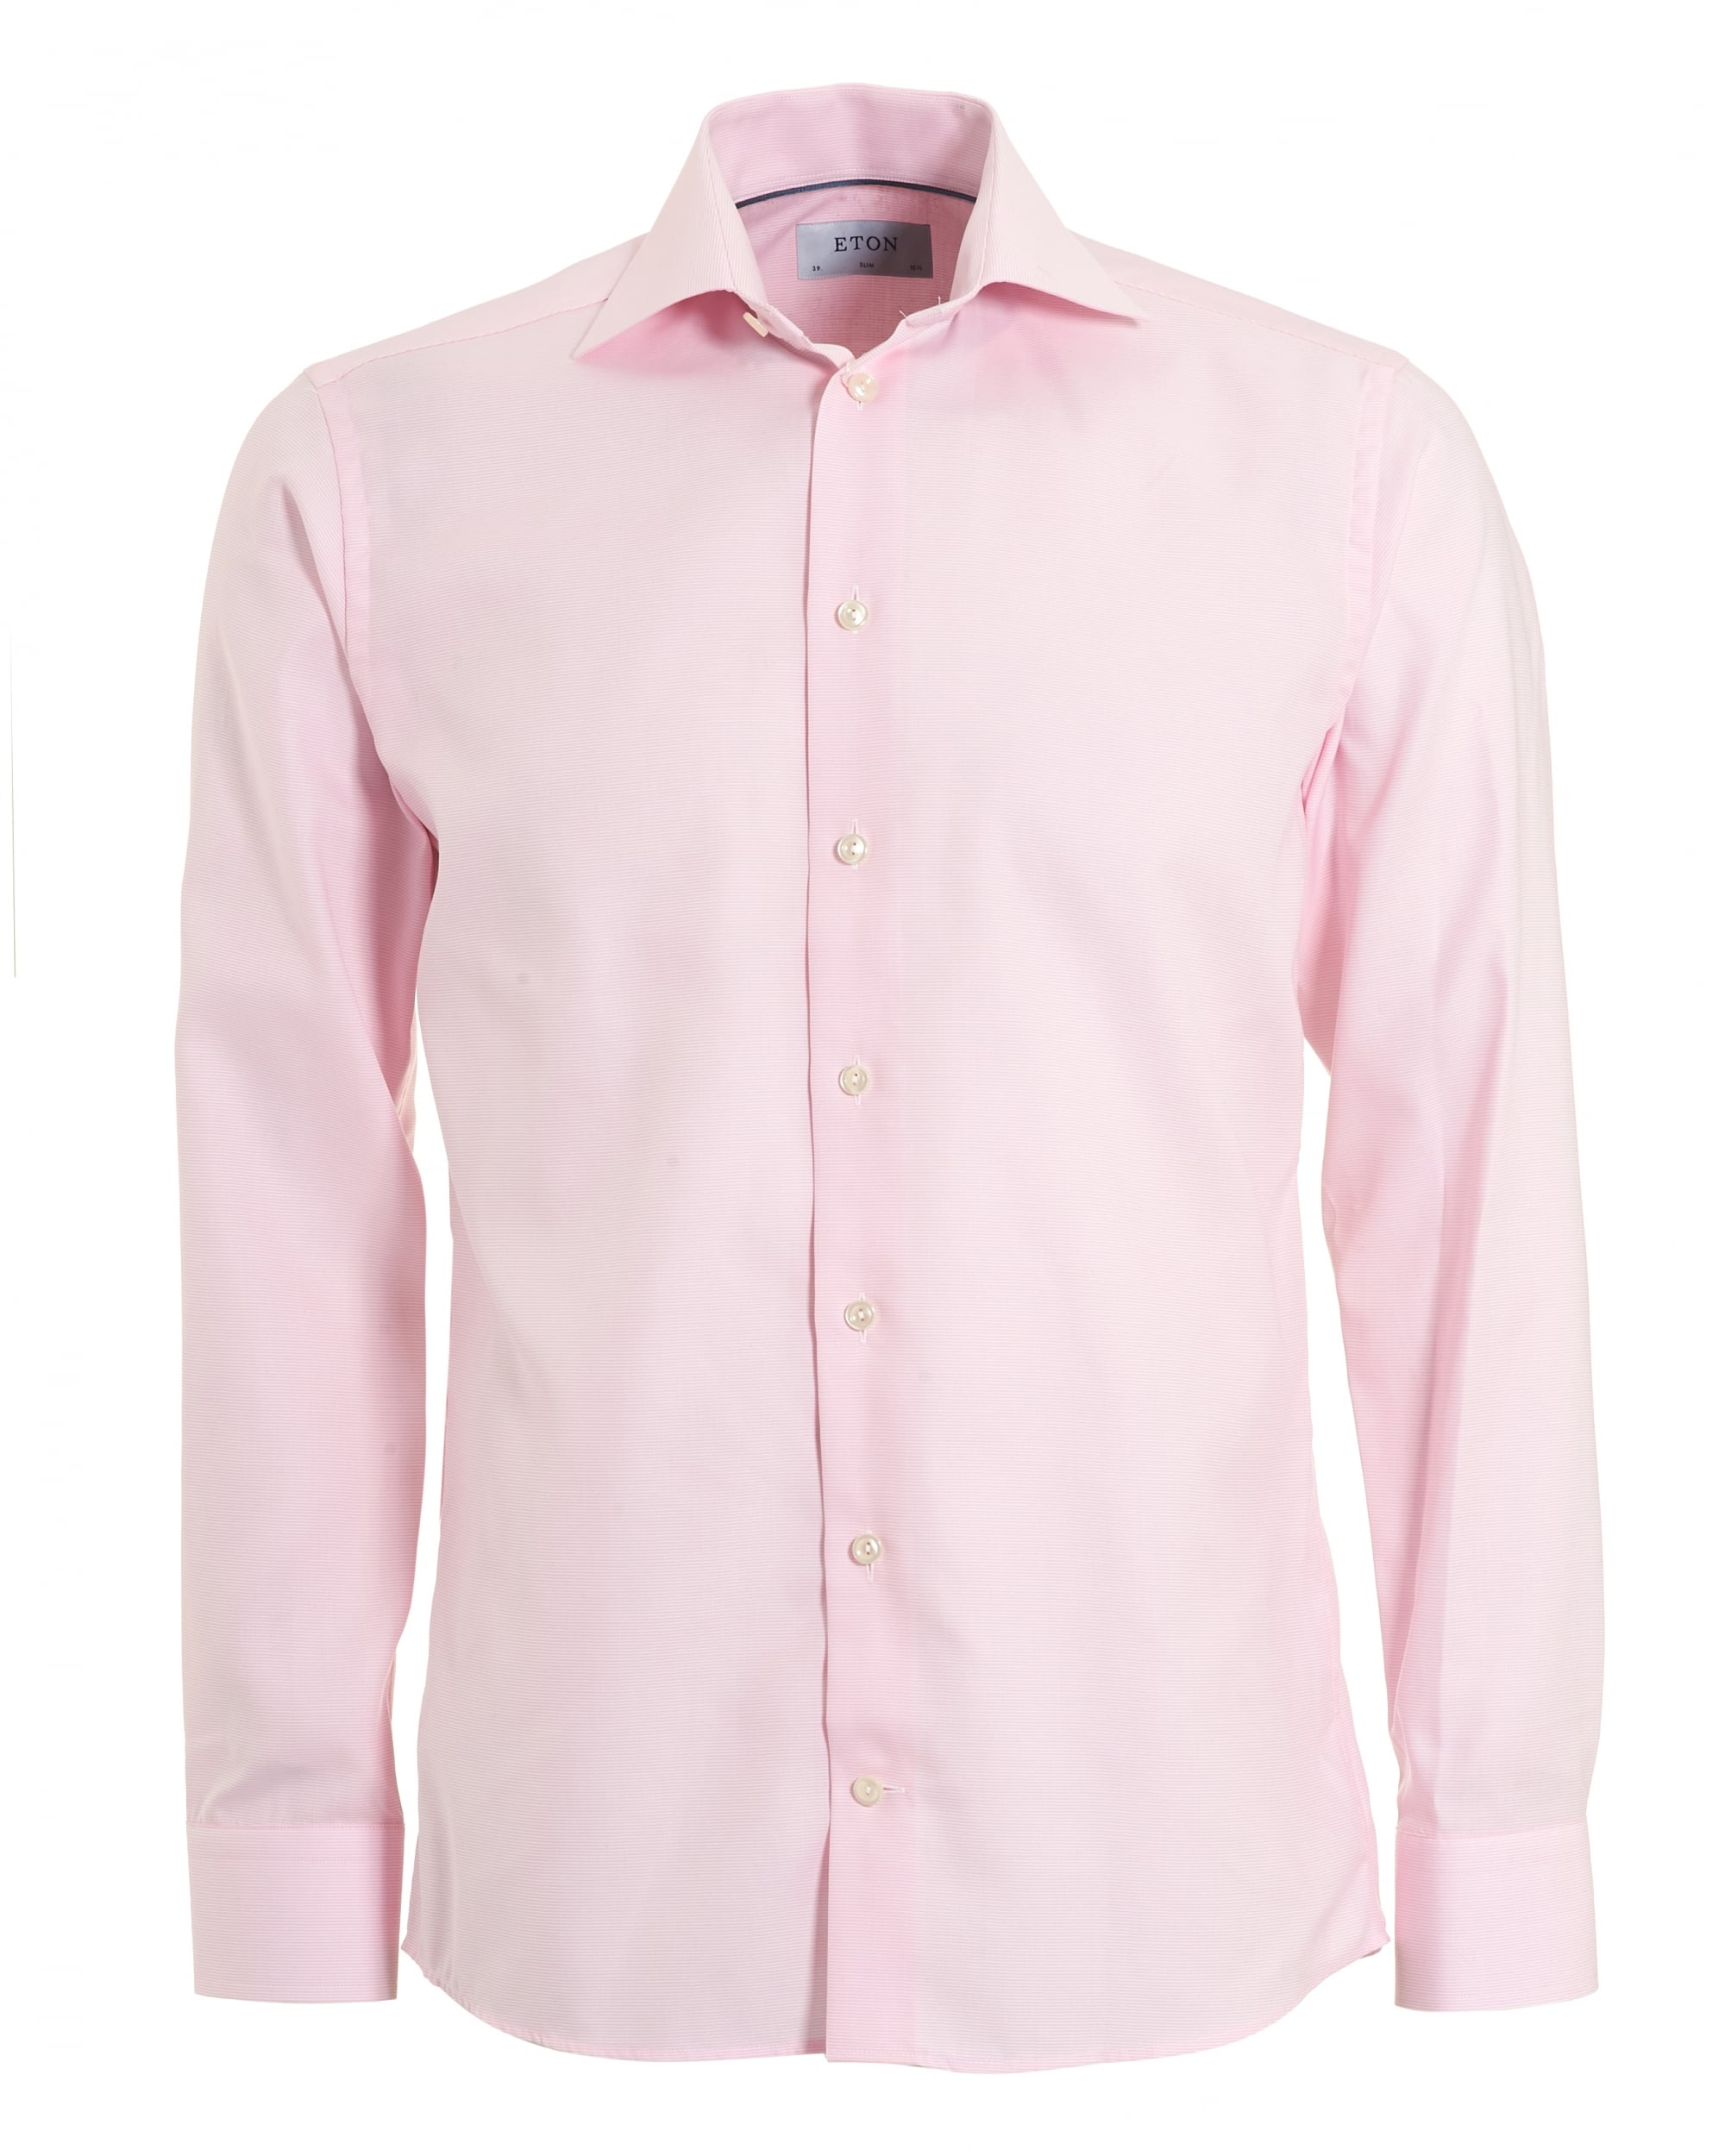 cba3614a16ee Eton Shirts Mens Slim Fit Pink Button Down Collared Shirt